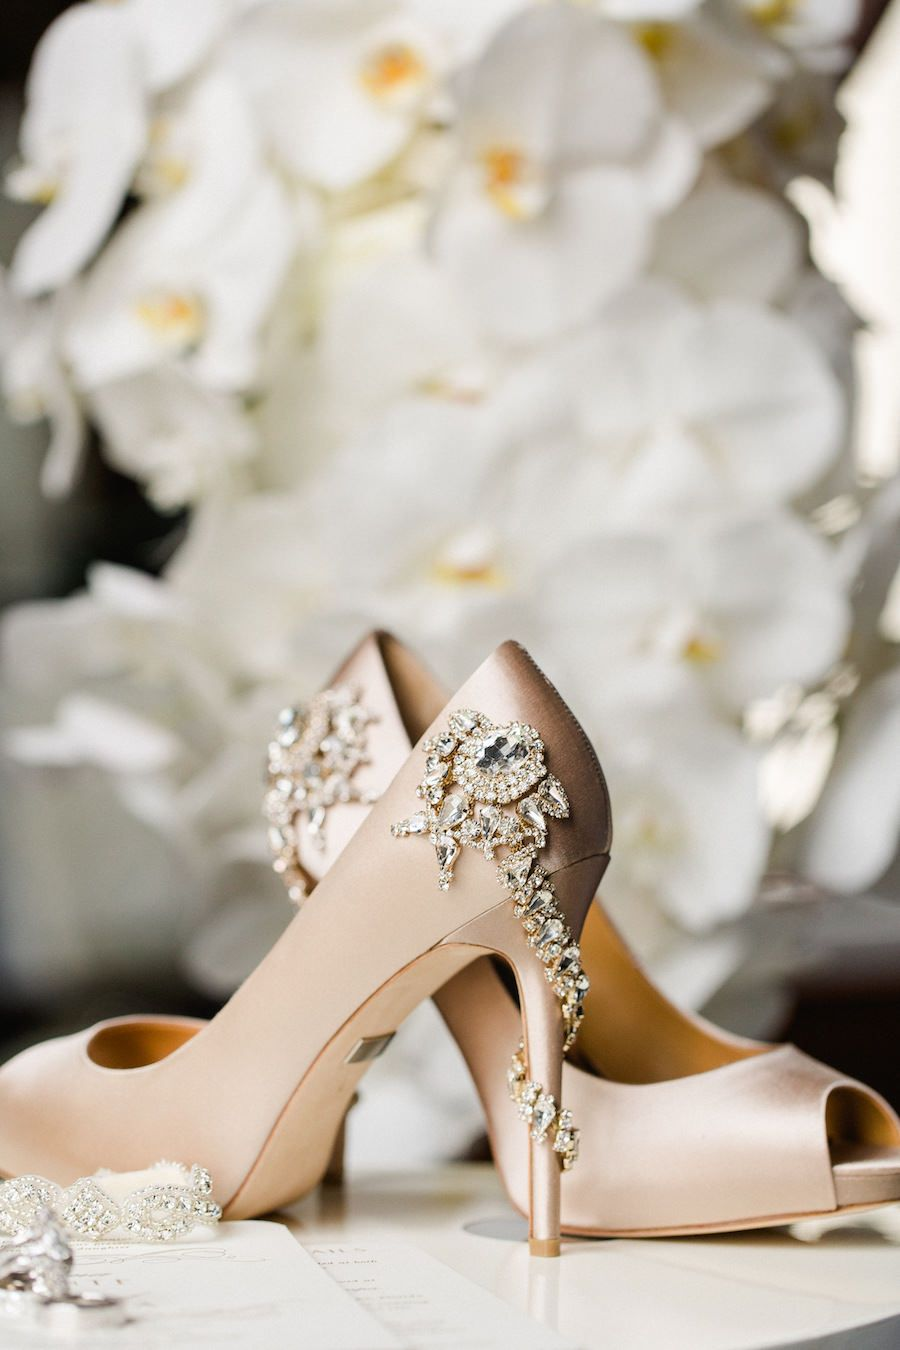 Nude Badgley Mischka Royal Evening Pumps Wedding Shoes with